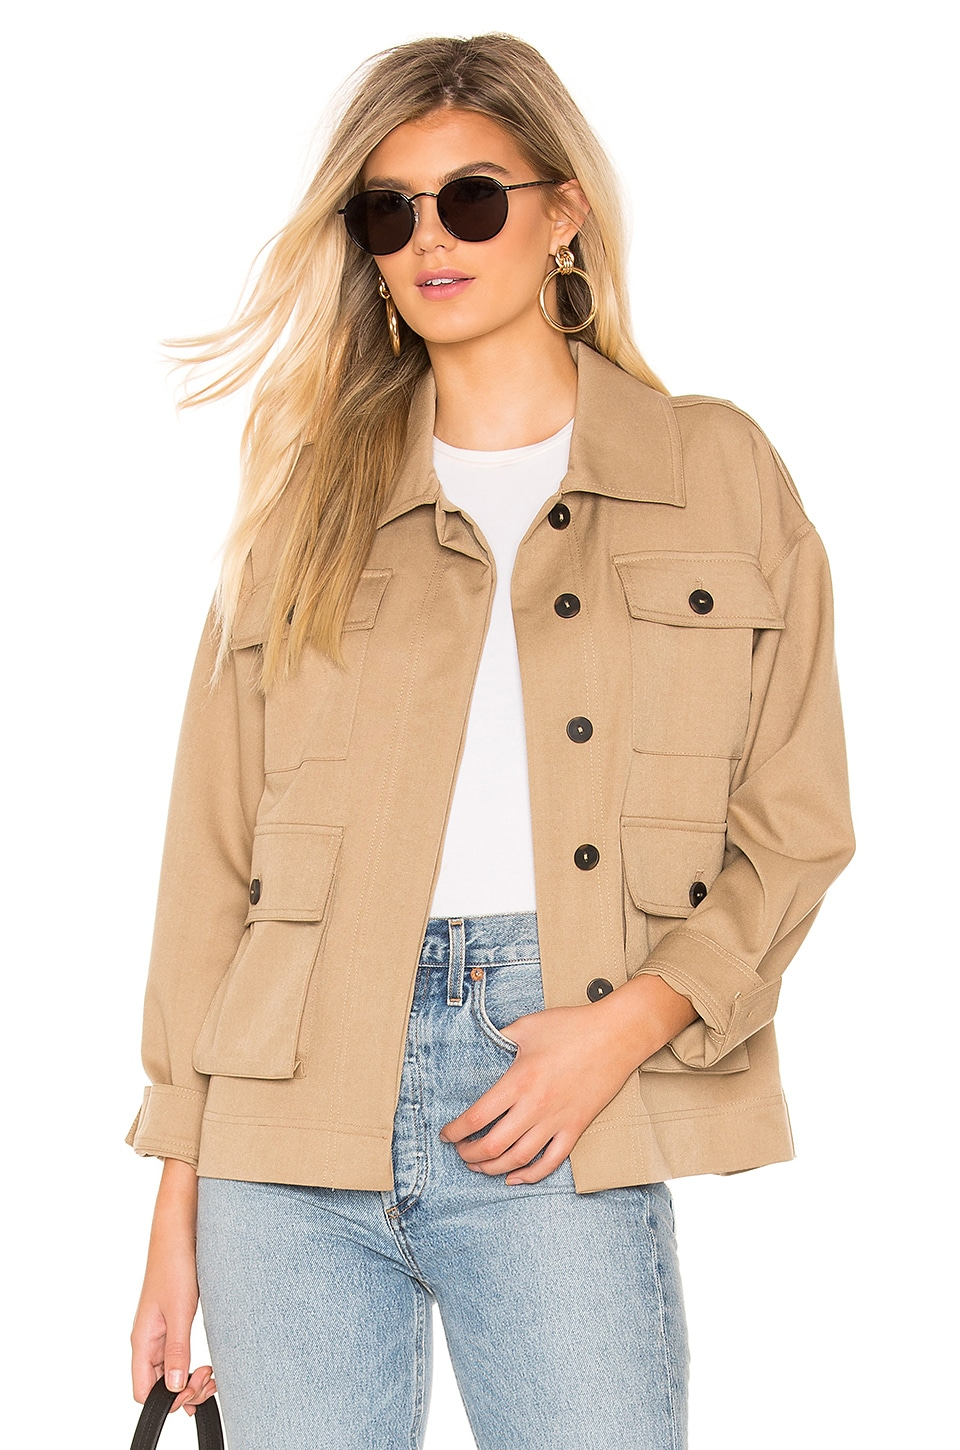 Tularosa Felix Jacket in Khaki